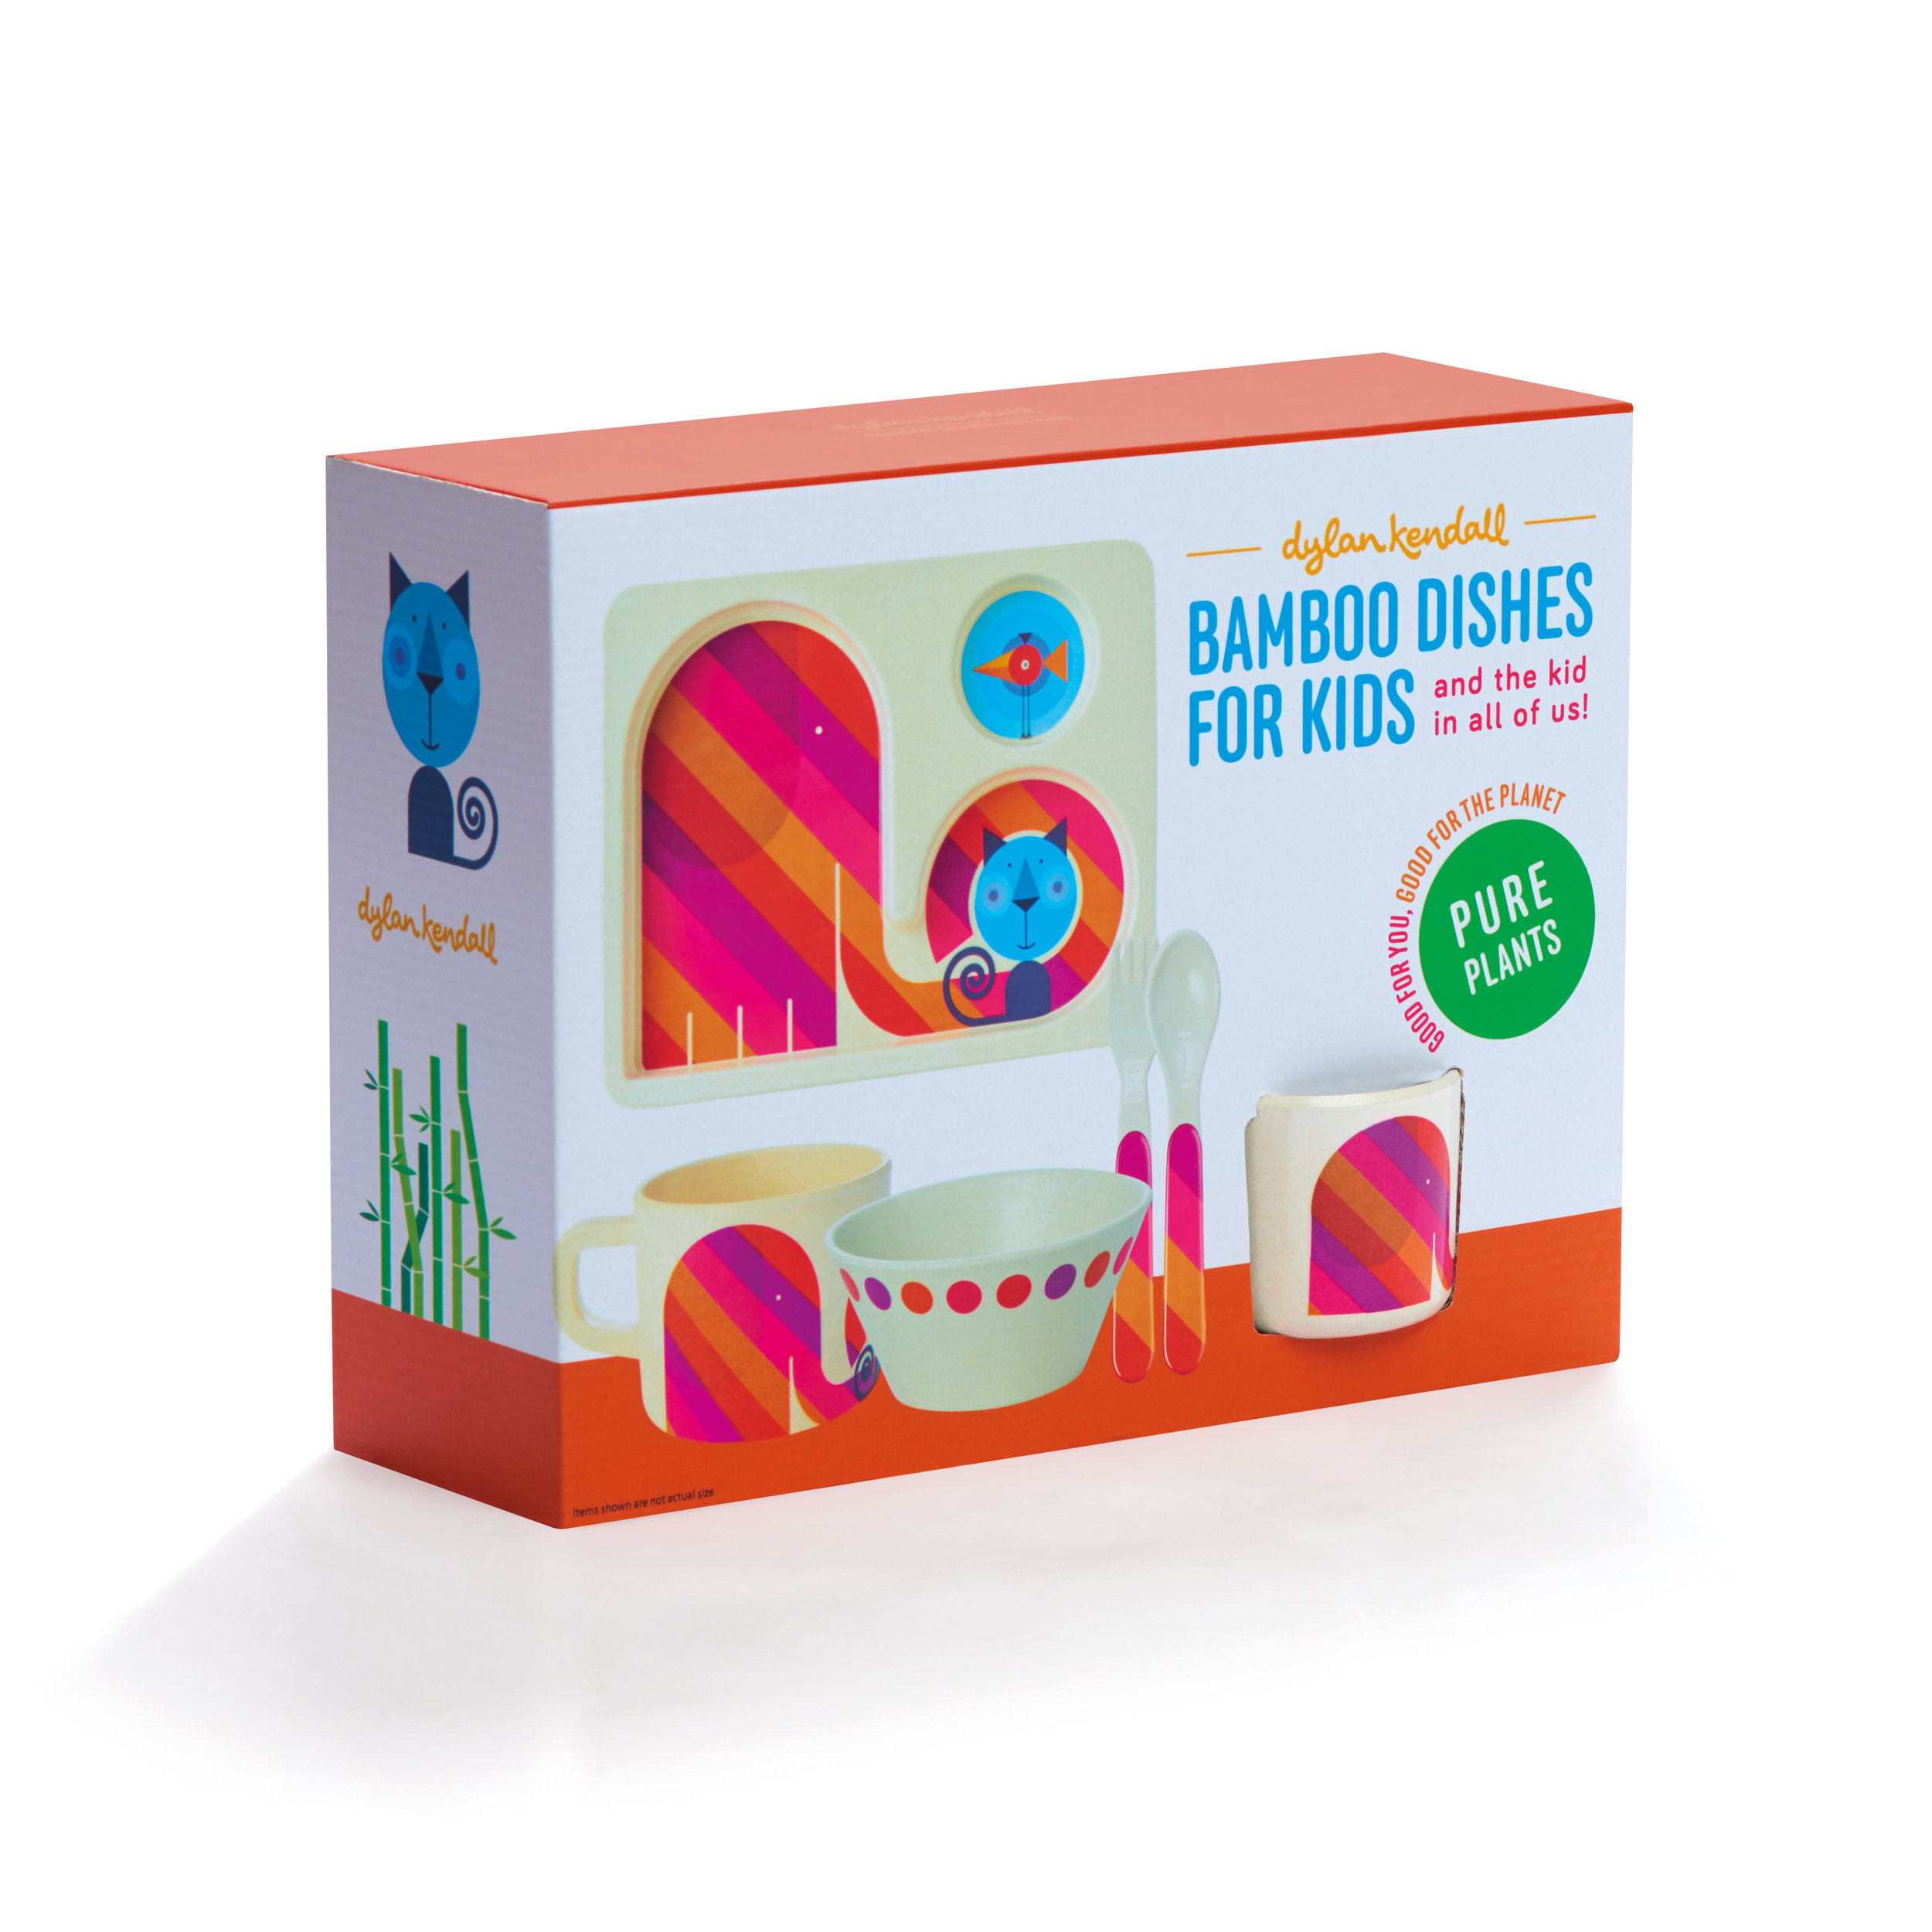 Dylan Kendall - Bamboo Toddler - Elephant & Cat - Gift box - Toddler tray, bowl, cup, fork and spoon - front-RETM2.jpg